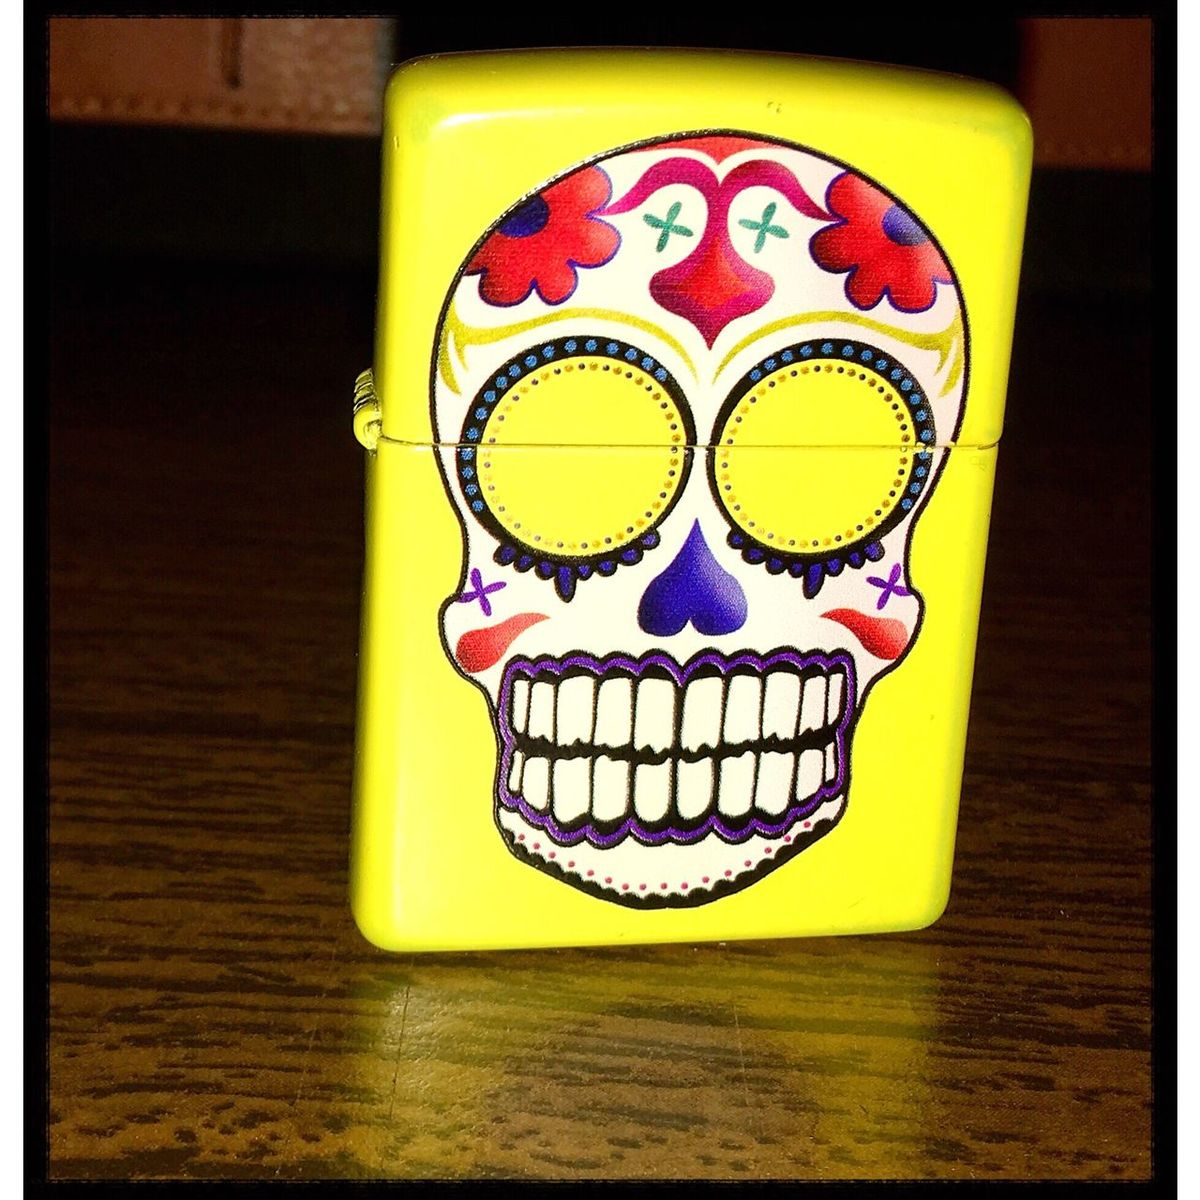 Smile, everything is going well. Zippo Smile Random Ligthers